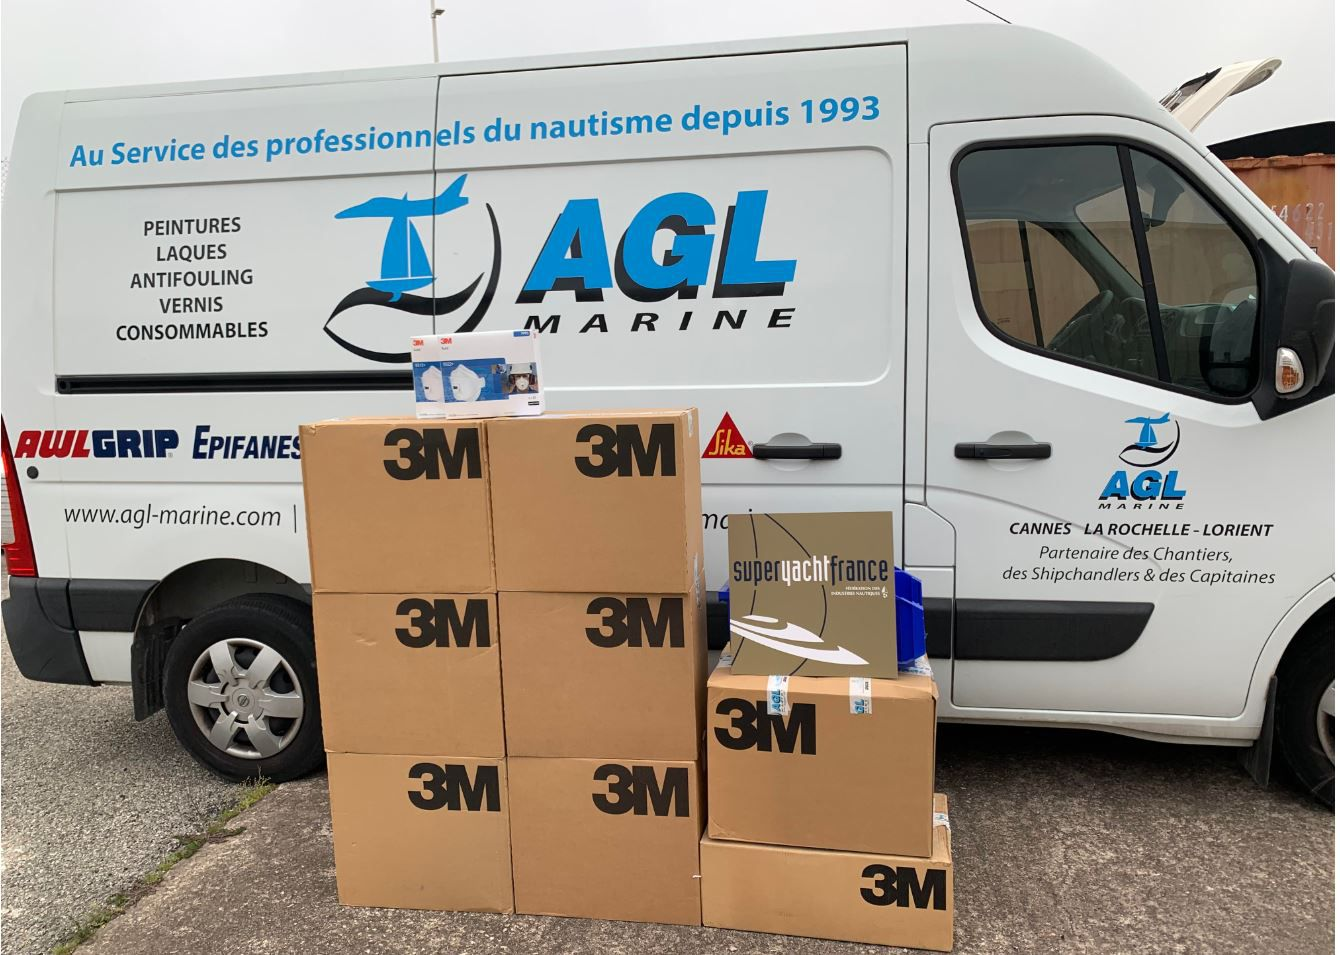 AGL Marine donate 1000 FFP2 masks to the city of Cannes